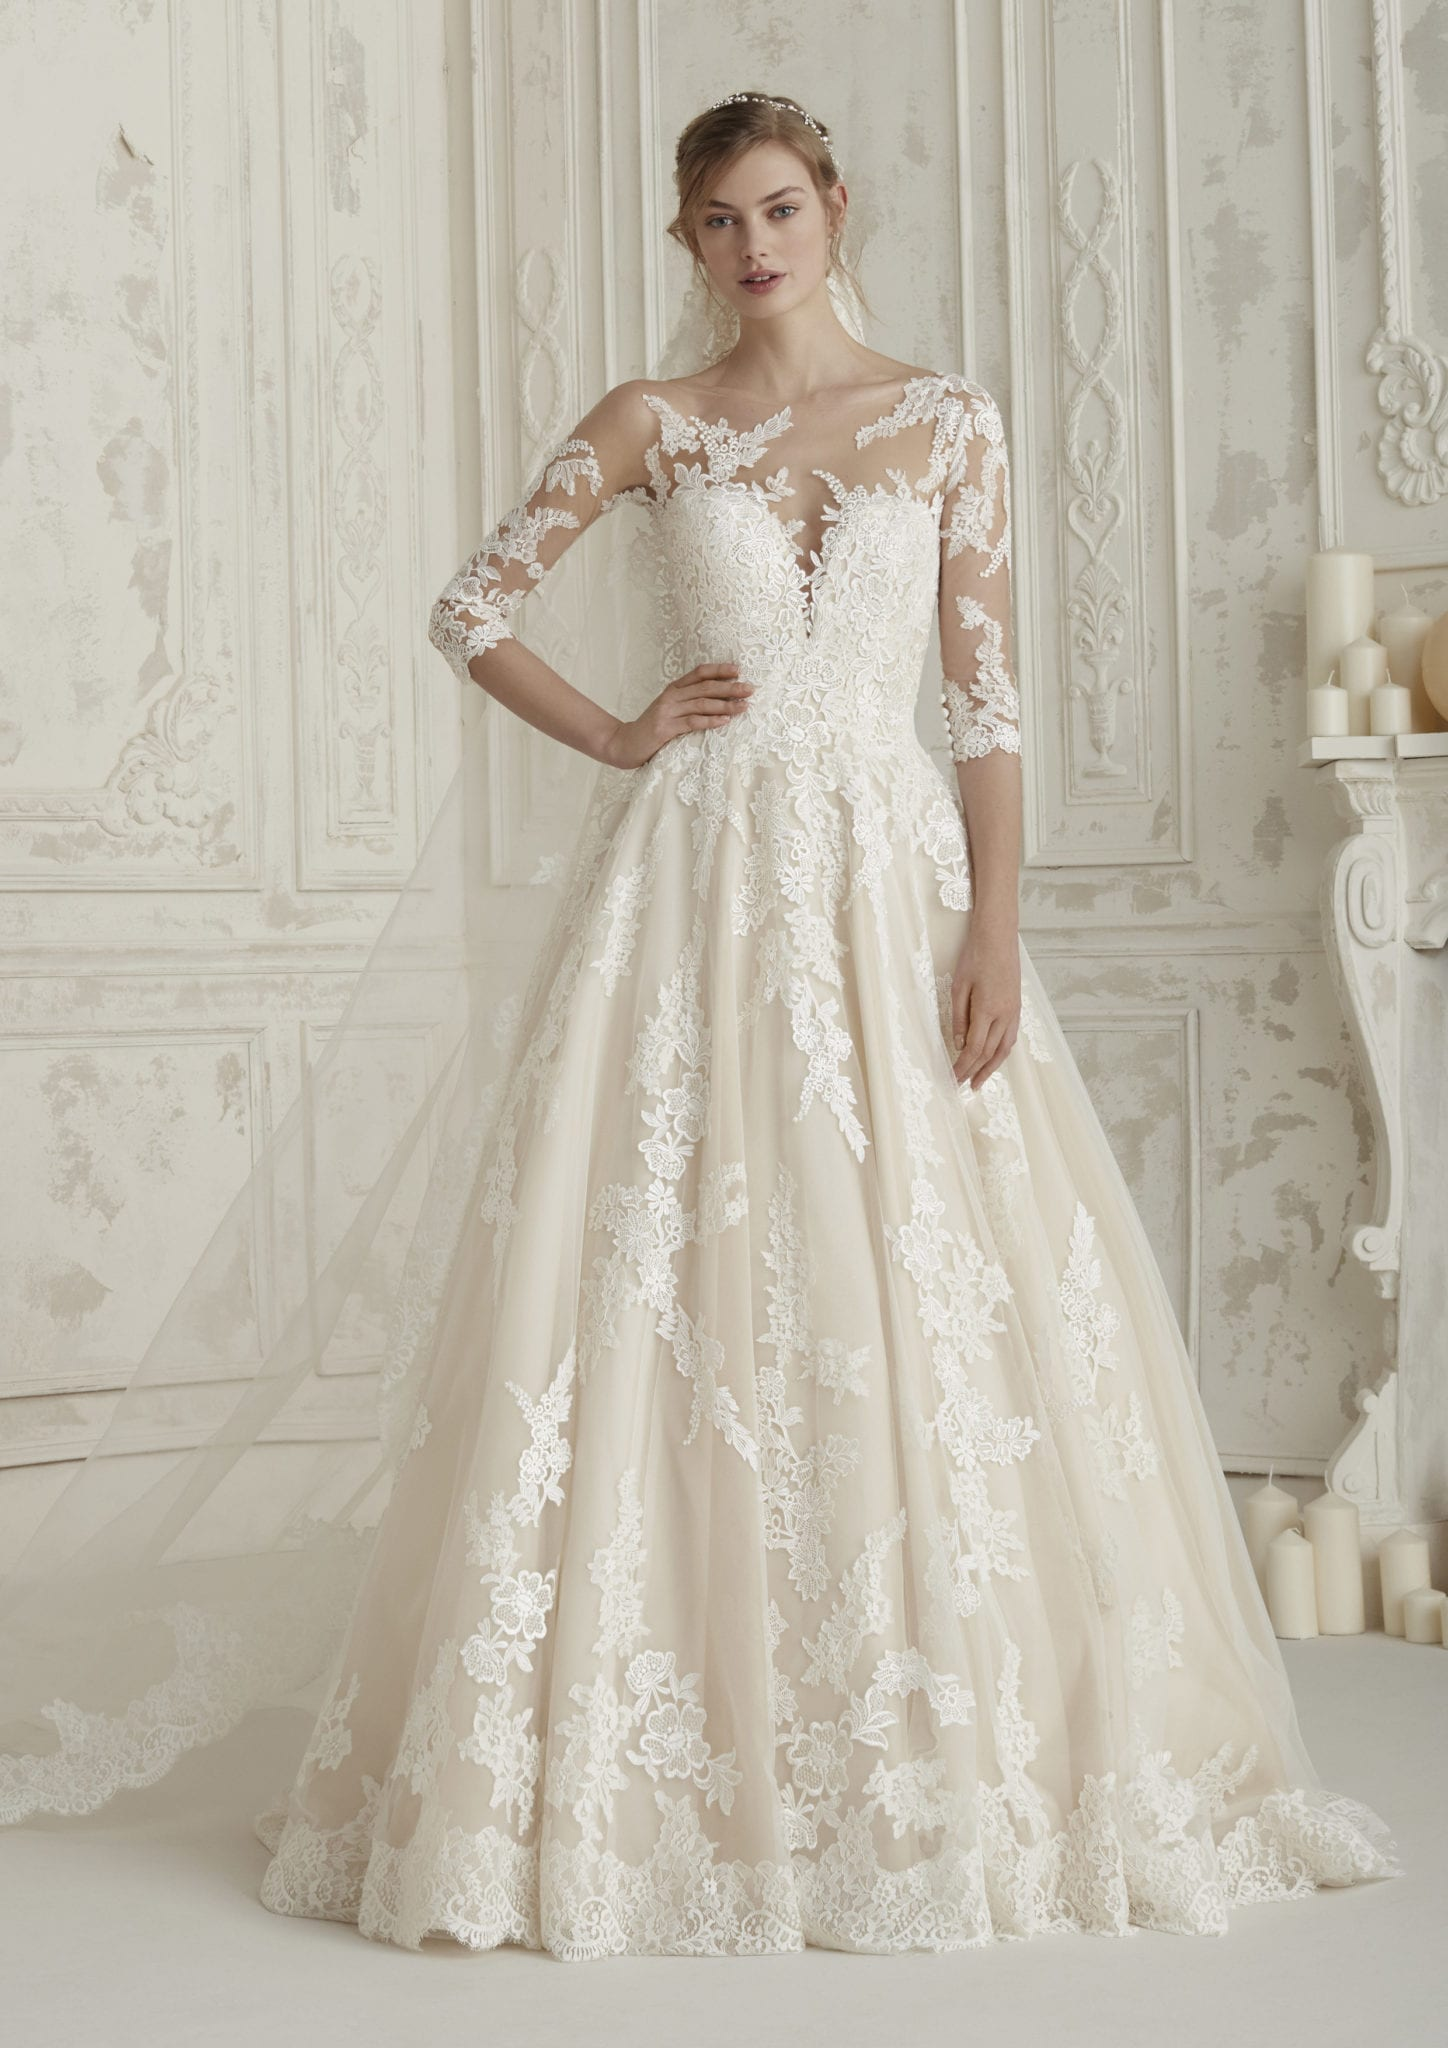 Elche Wedding Dress